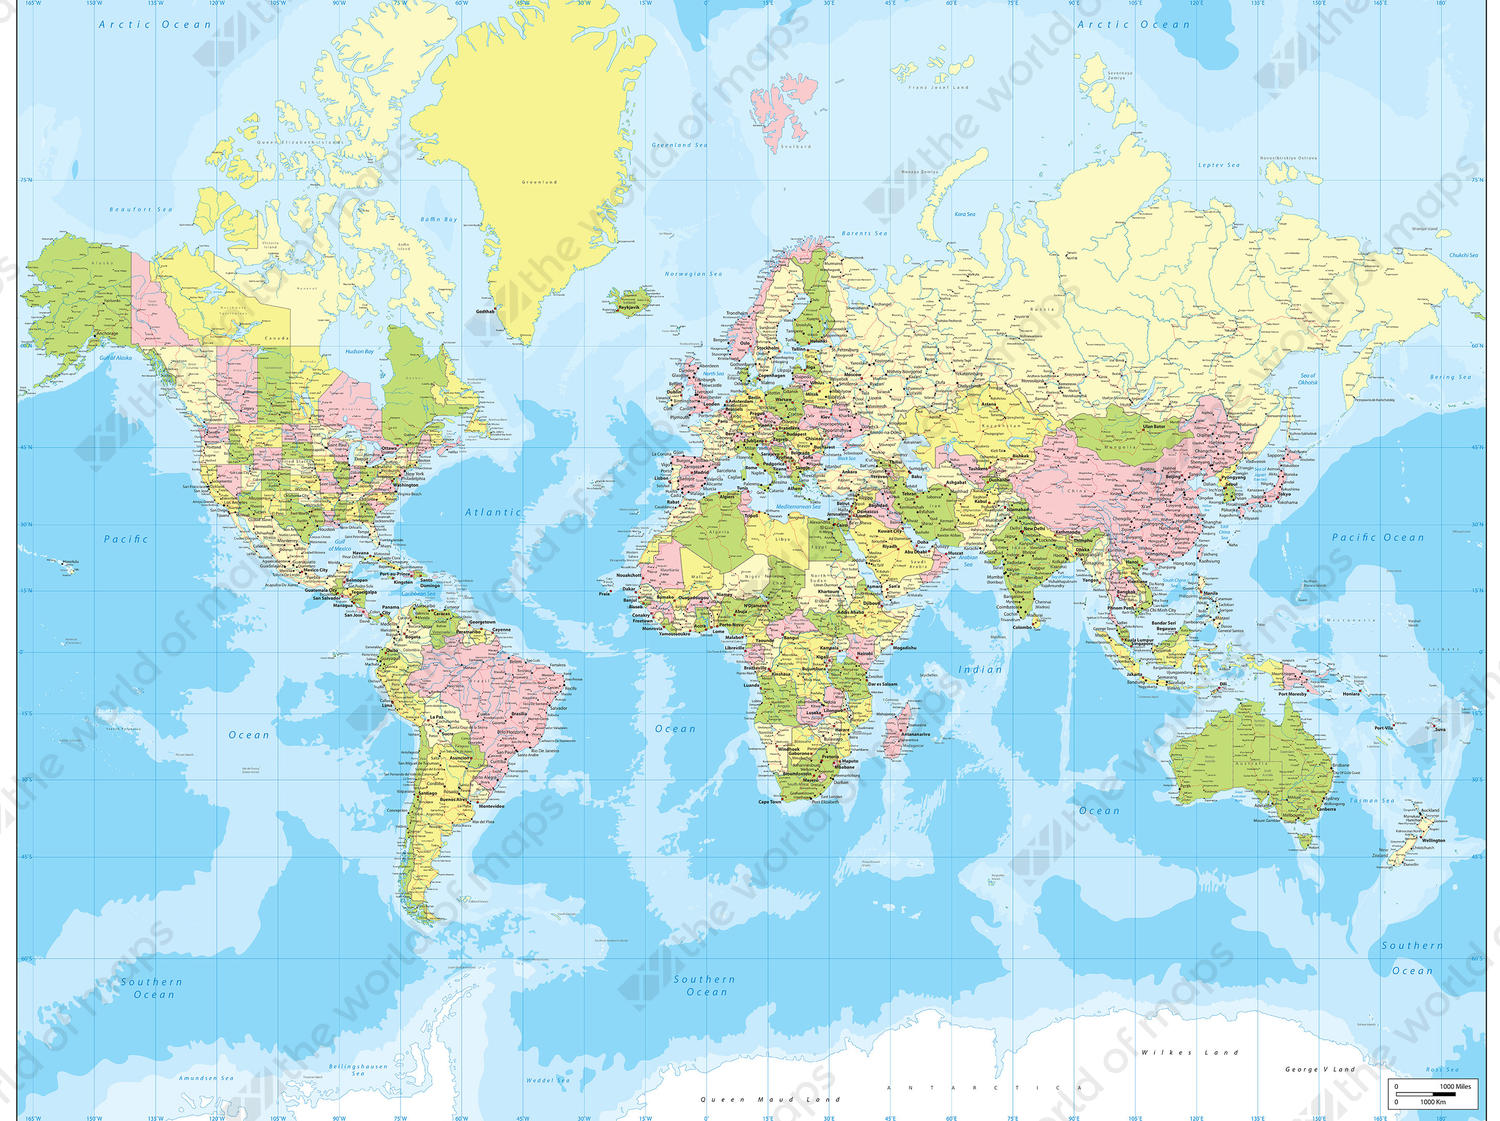 Digital world map political 198 the world of maps digital world map political with bright colors gumiabroncs Choice Image